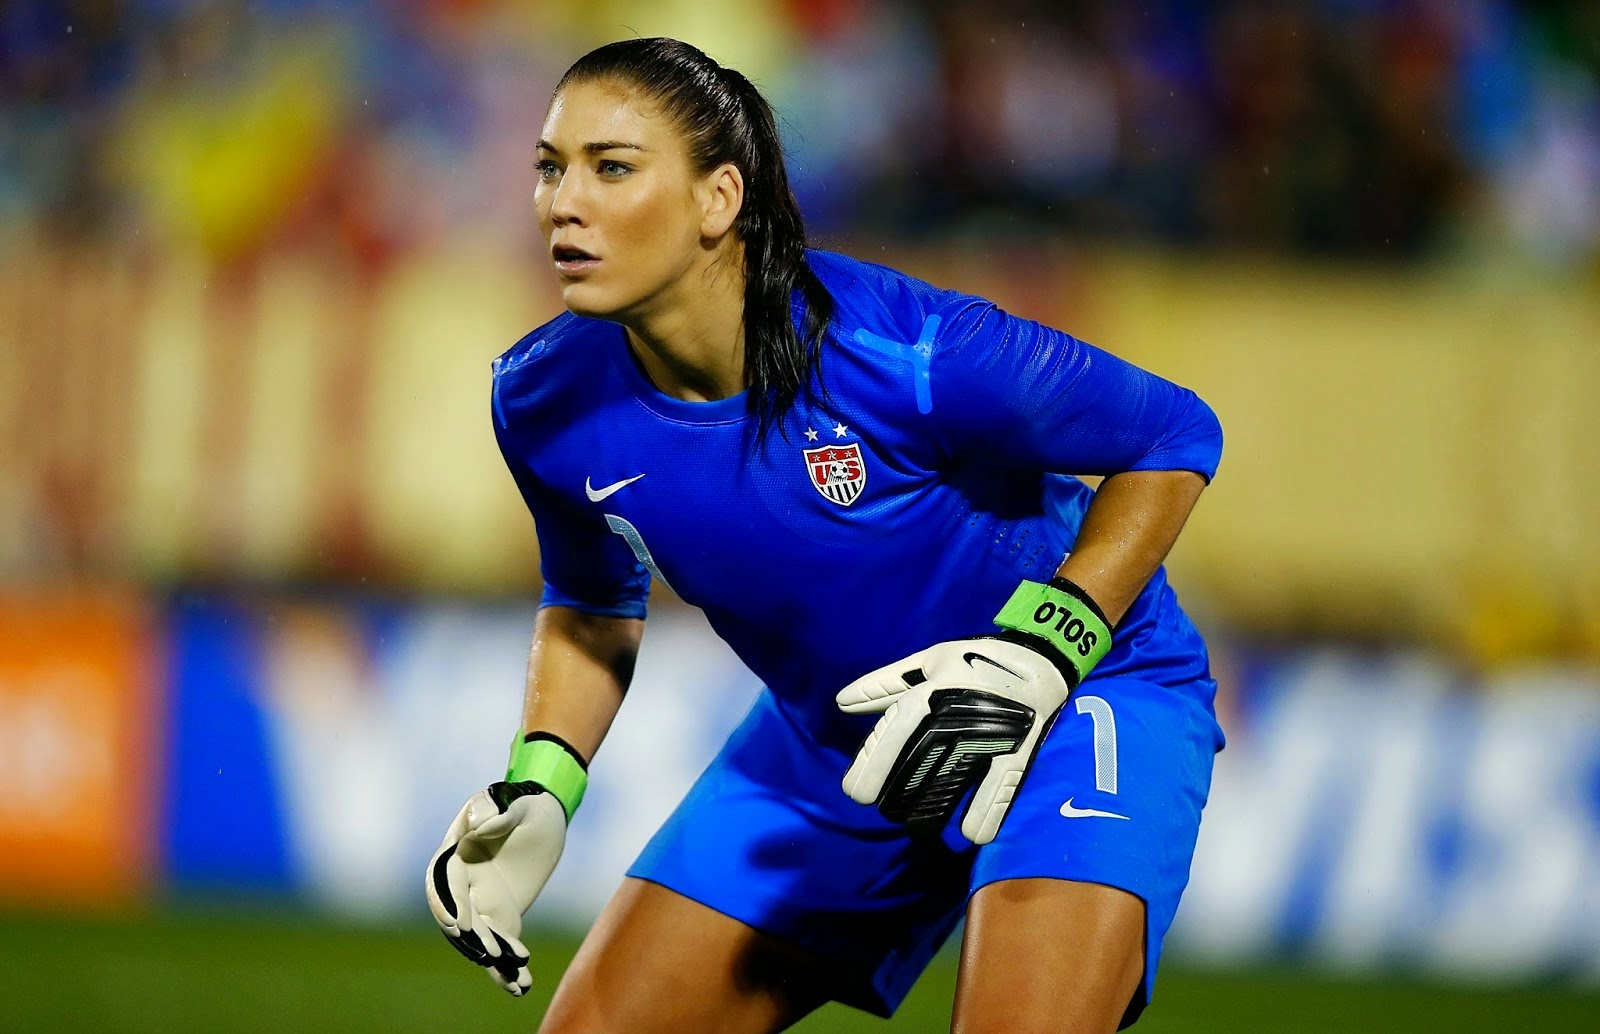 Hope solo leaked icloud leaked celebrity photos online